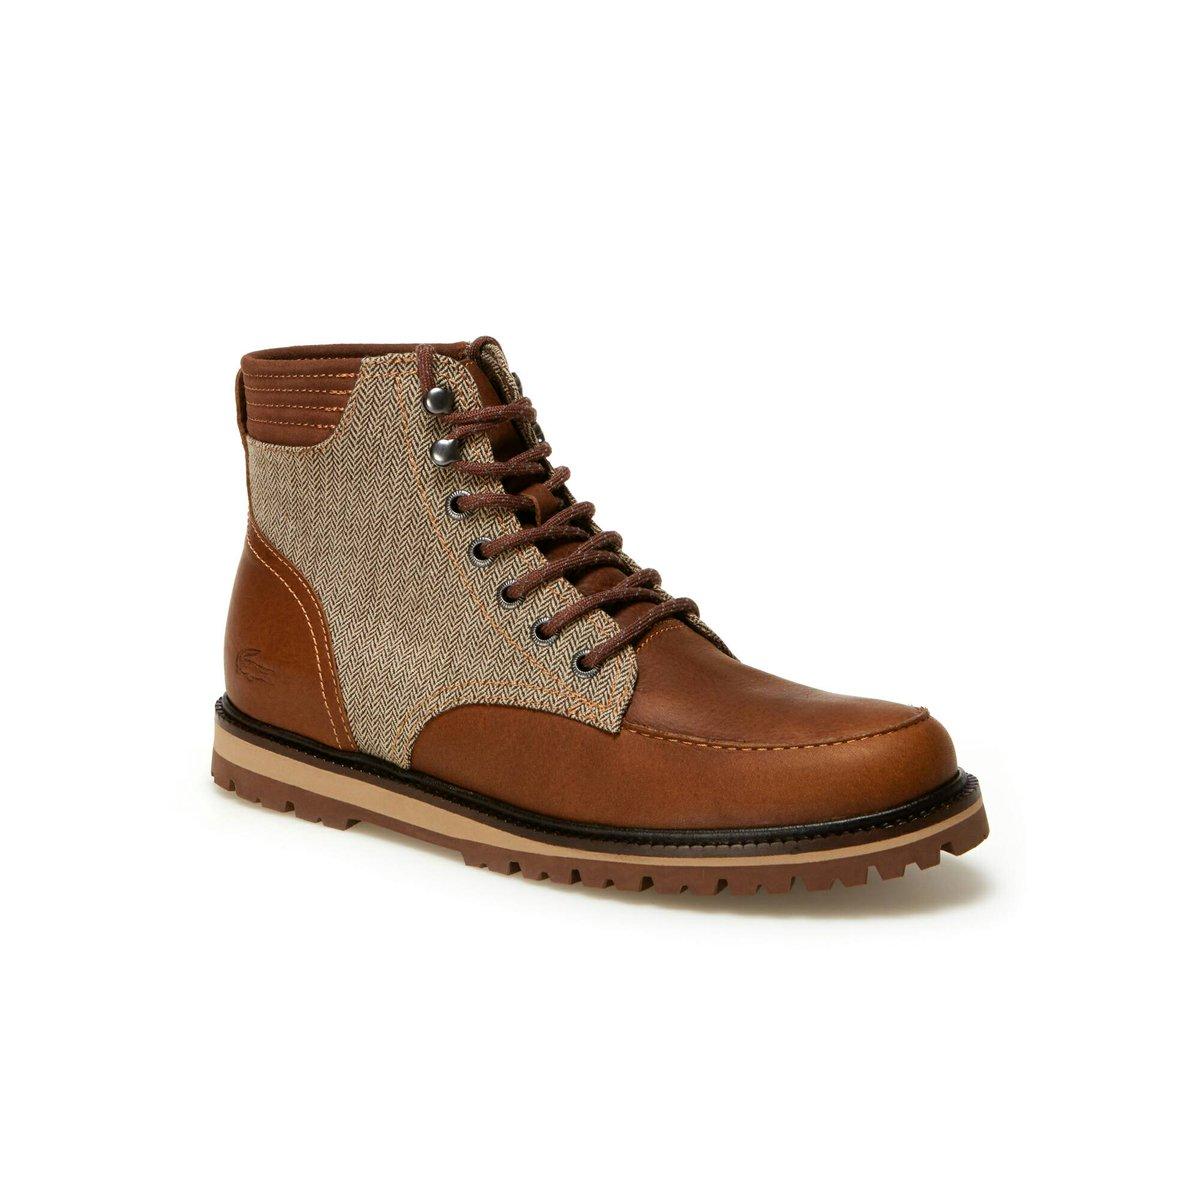 9c7cf709 lacoste mens montbard boot hashtag on Twitter